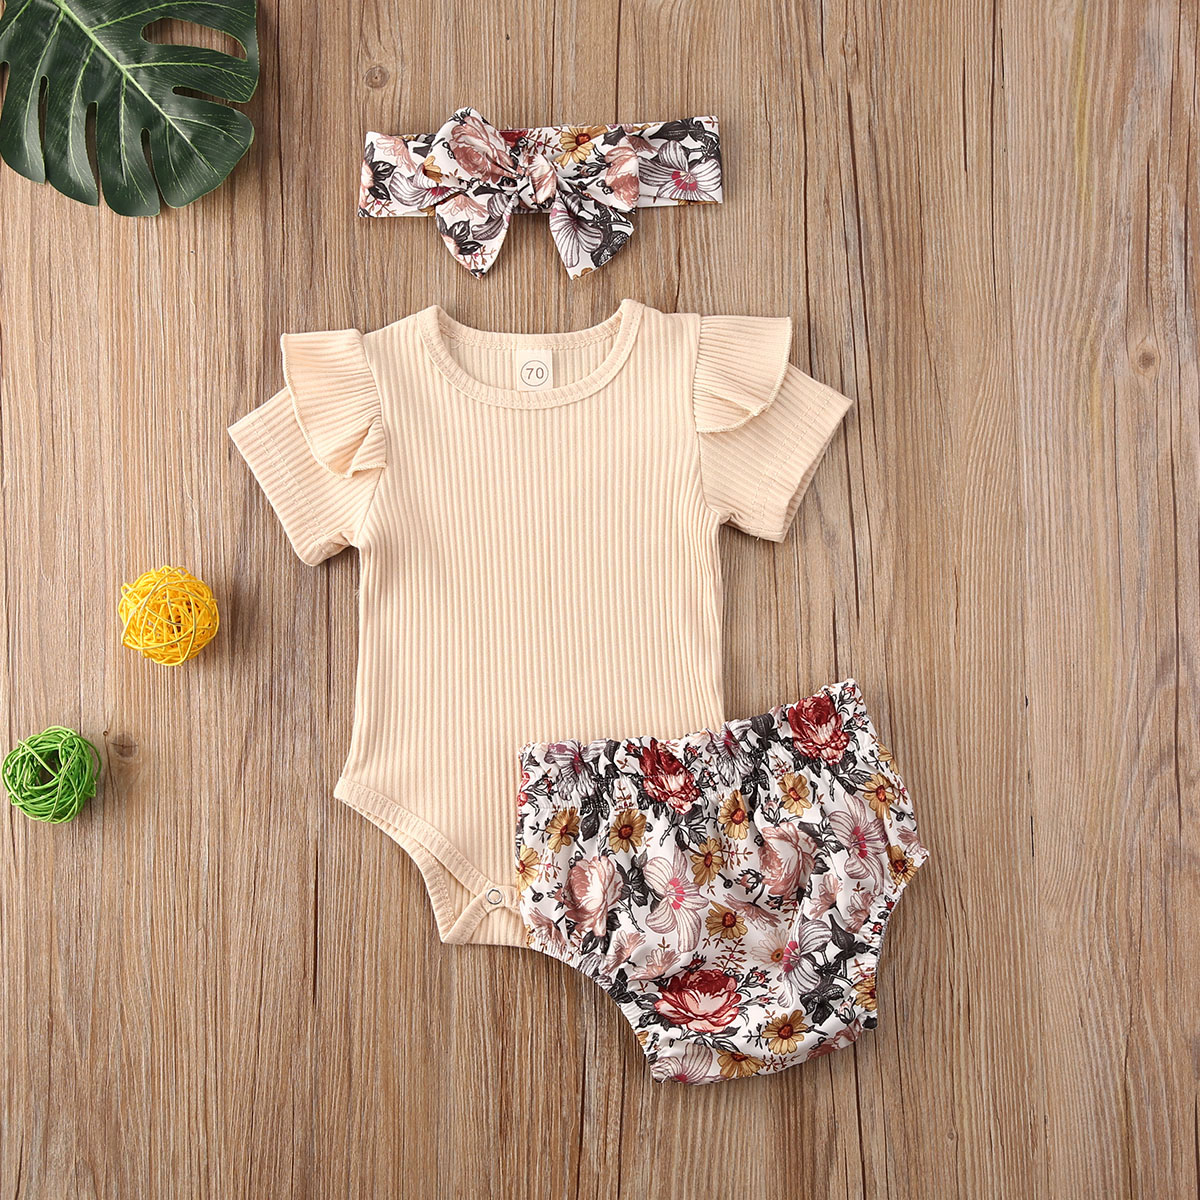 Newborn 3Pcs Solid Color Short Sleeve Printed Shorts Bow Tie Elastic Waist Summer Baby Clothing Set 0-24M